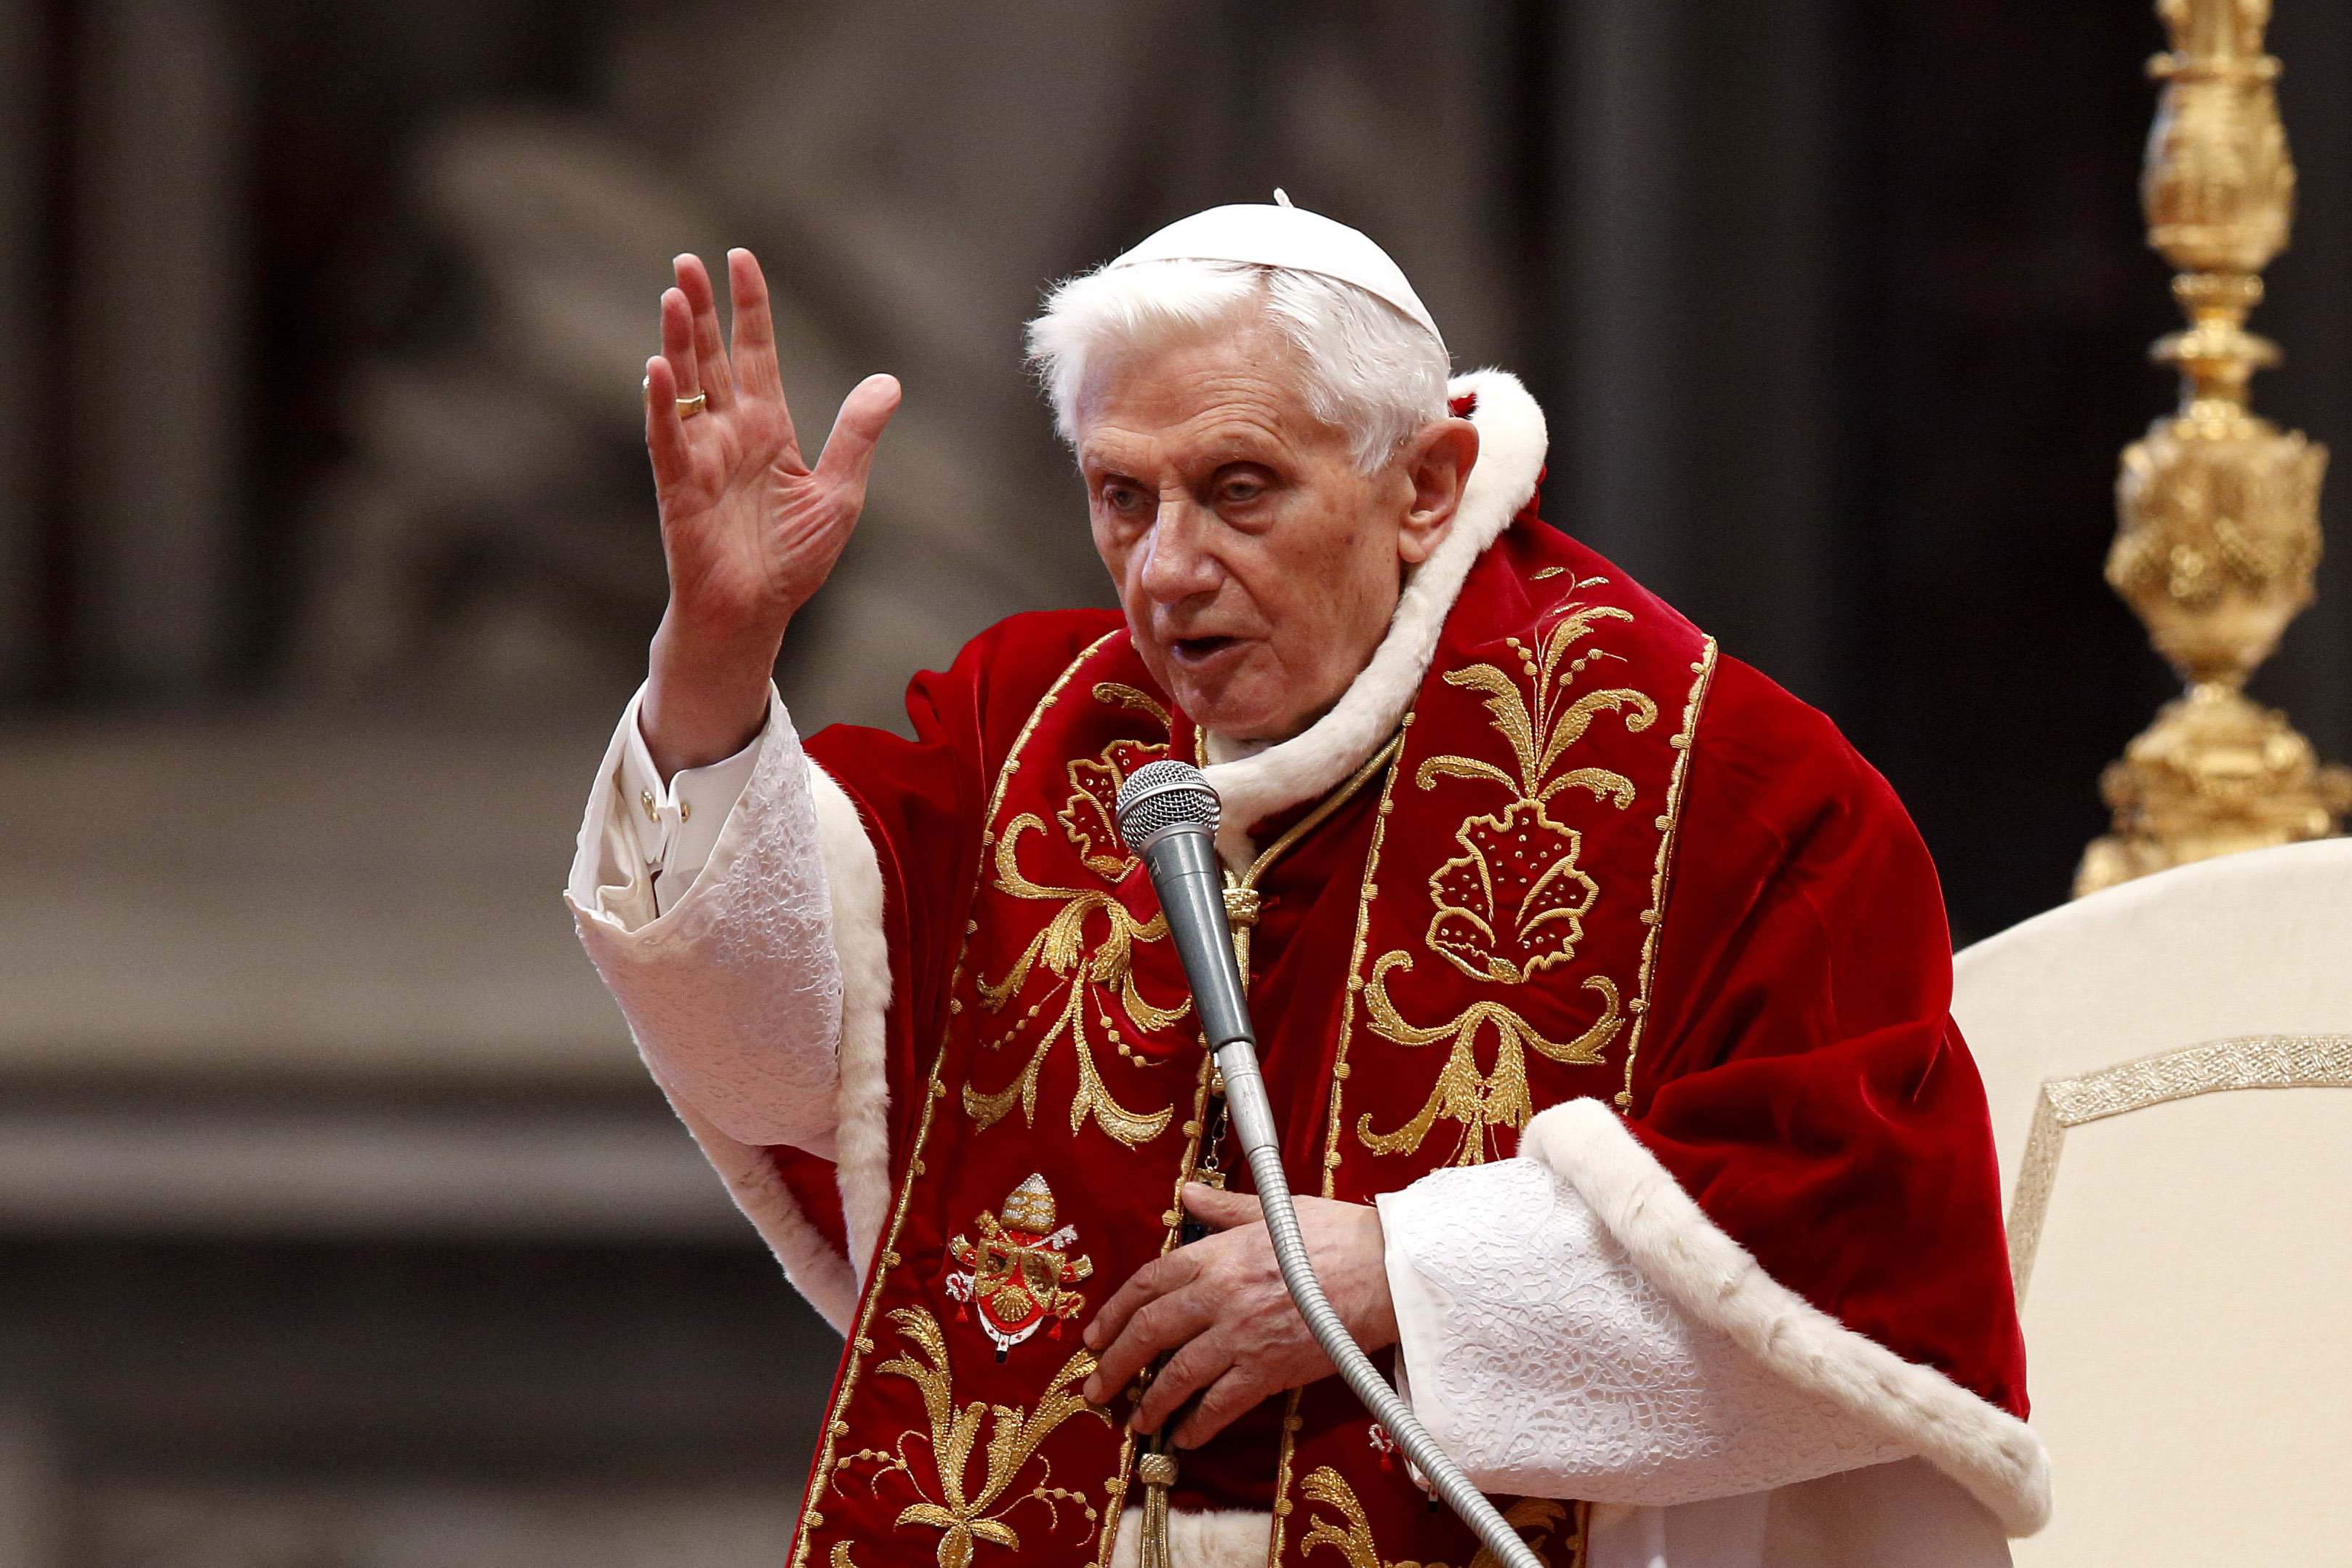 Pope Benedict XVI delivers a blessing at the conclusion of a Mass for the Knights of Malta in St Peter's Basilica at the Vatican on 9 February 2013, two days before he announced his resignation. The retired pope marked his 92nd birthday on 16 April. Photo: Paul Haring/CNS.